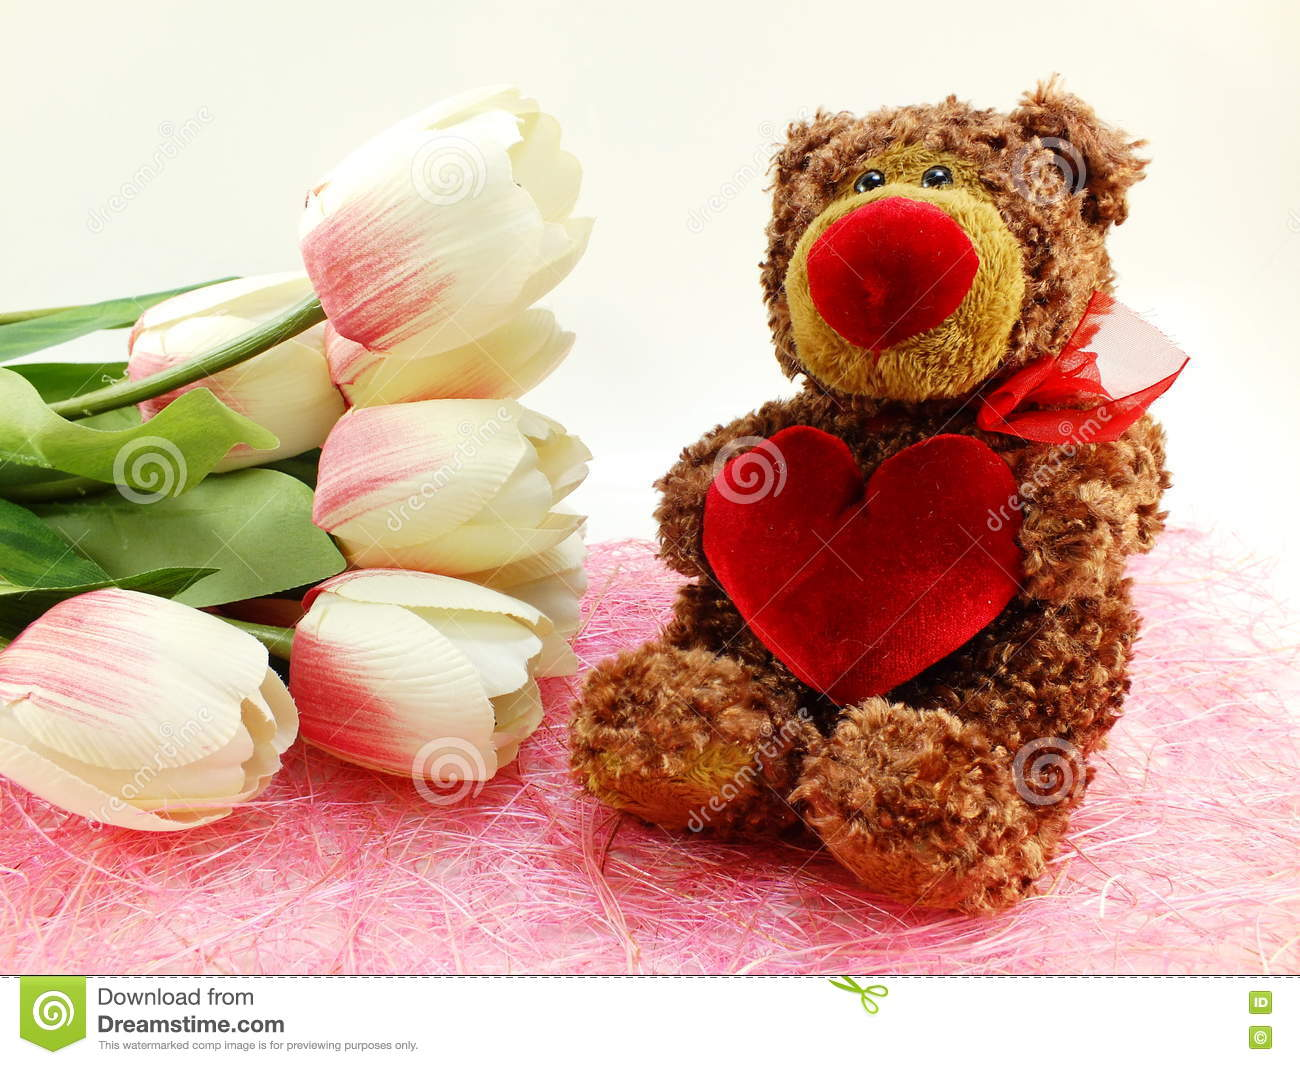 Cute teddy bear with red heart and tulip artificial flowers stock download cute teddy bear with red heart and tulip artificial flowers stock image image of izmirmasajfo